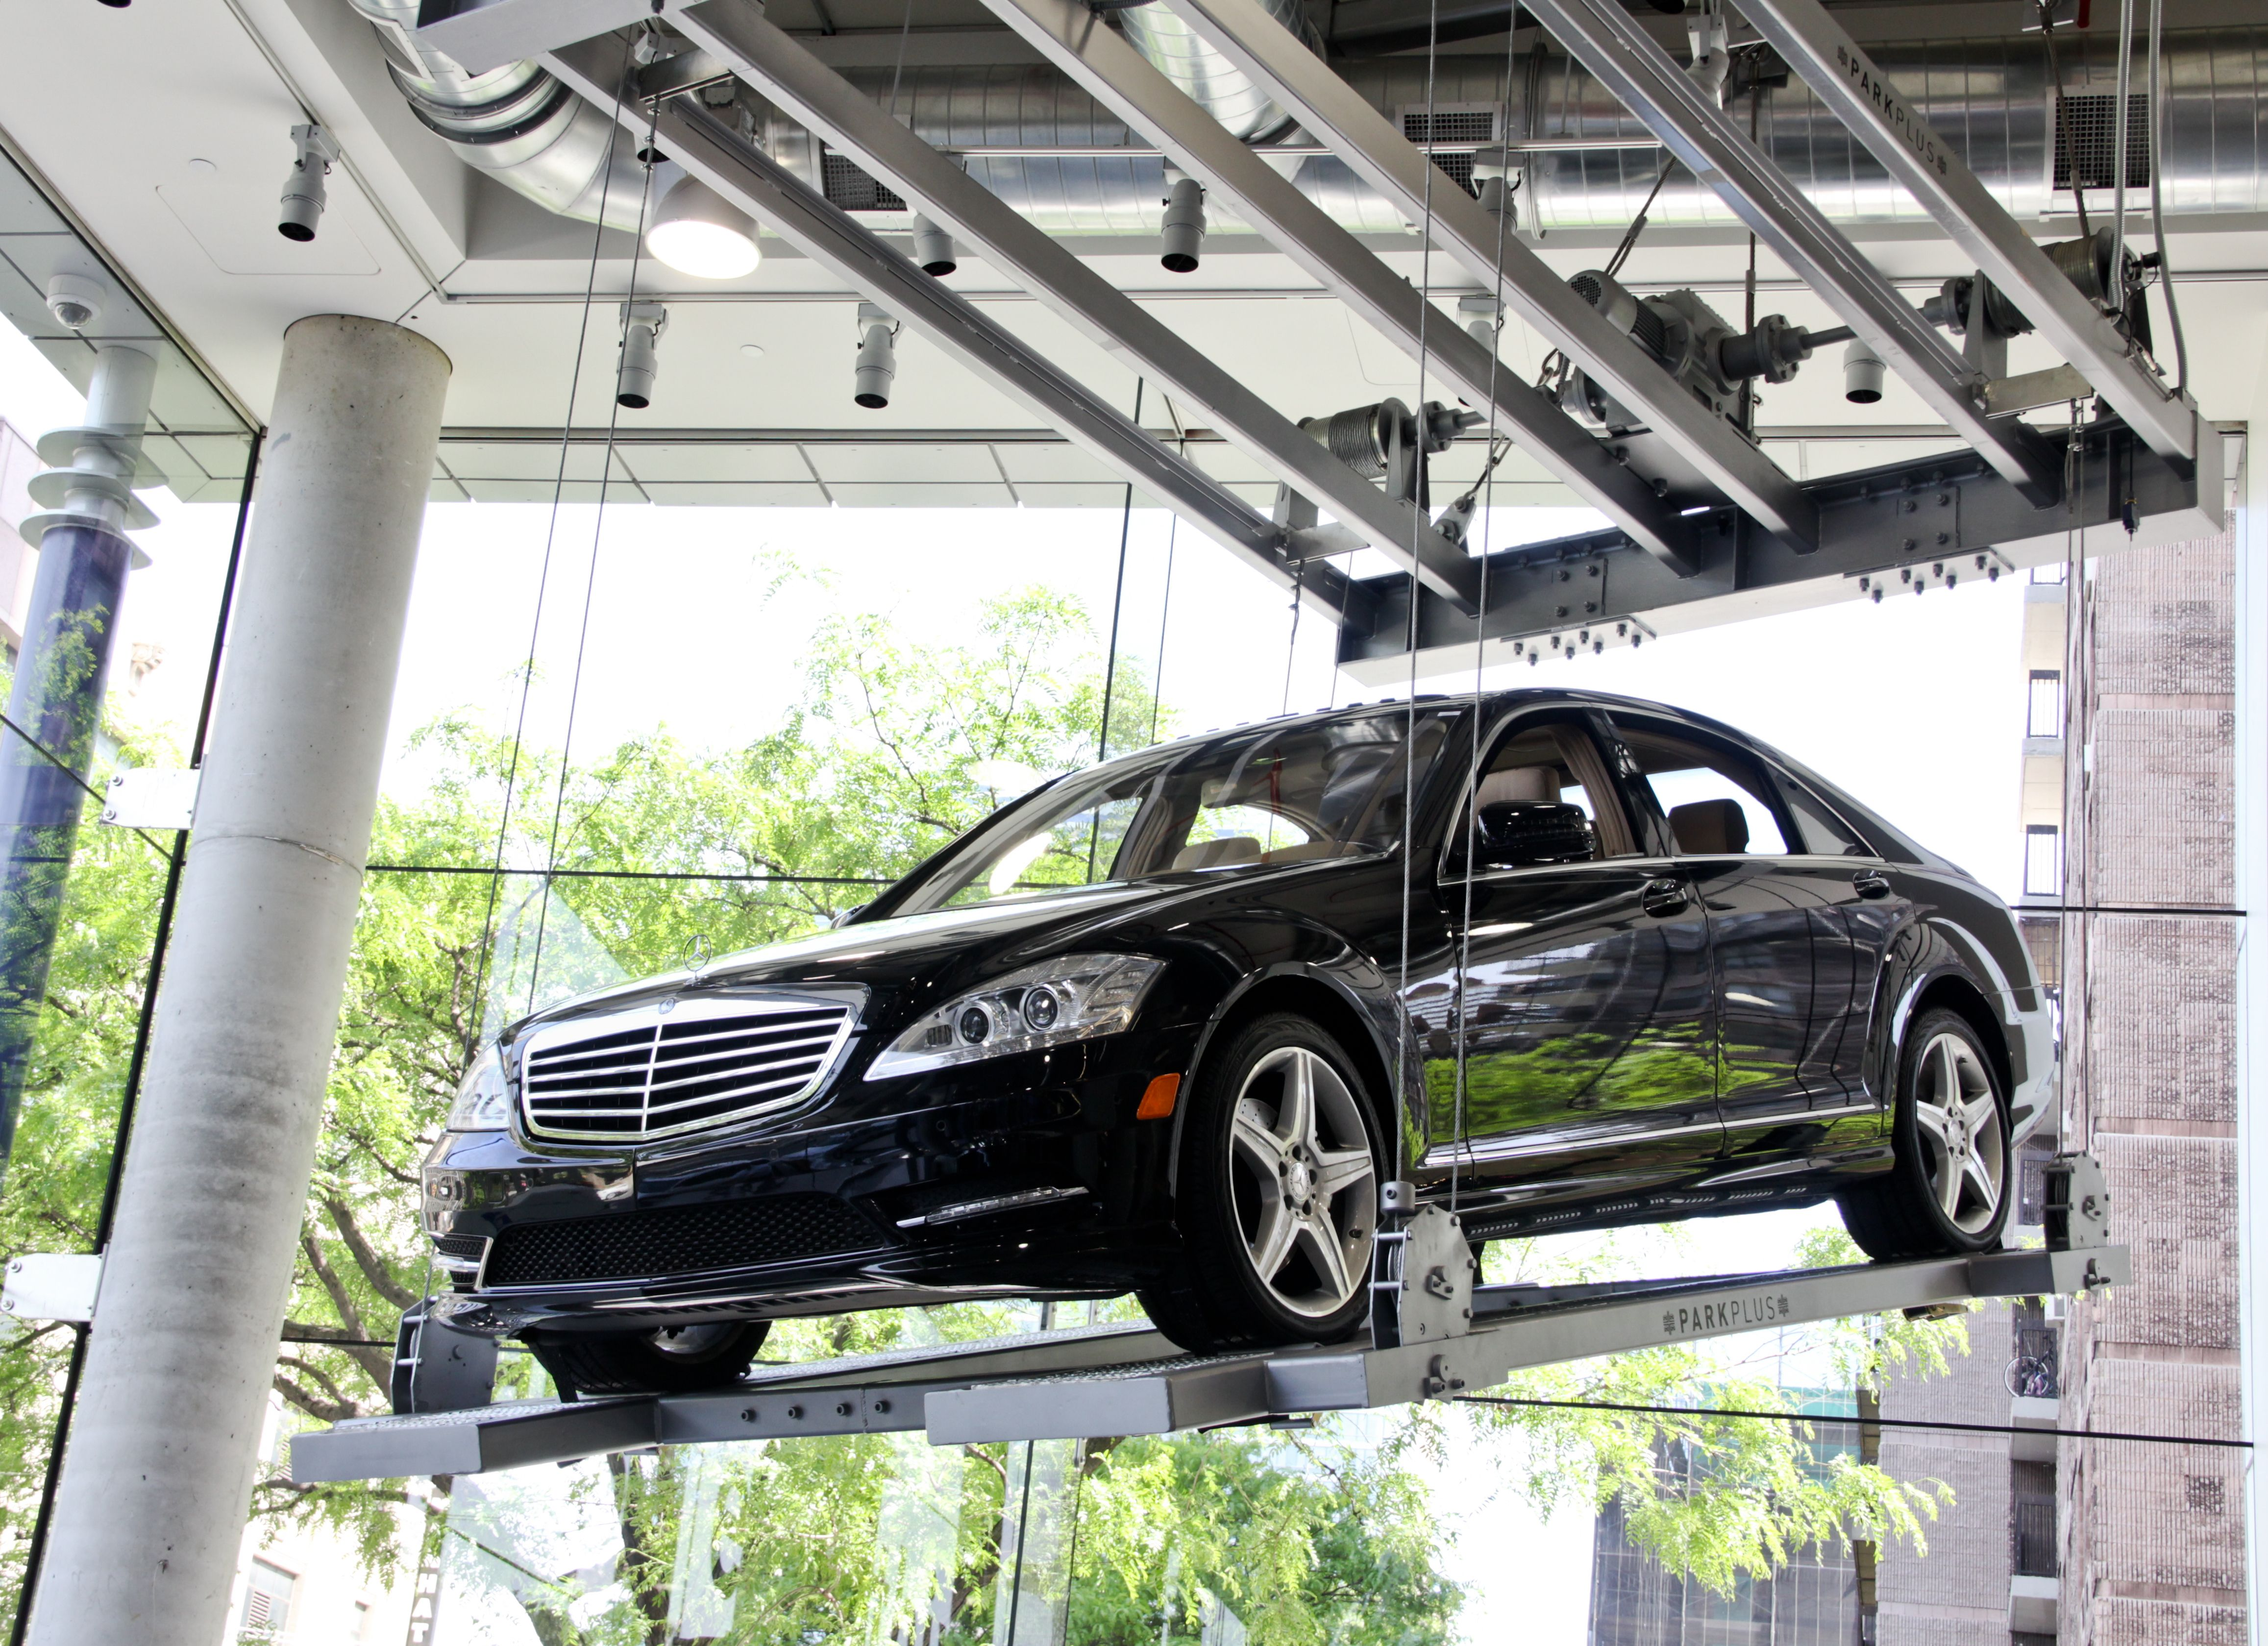 Mercedes Benz S550 Hanging From The Ceiling In The New Car